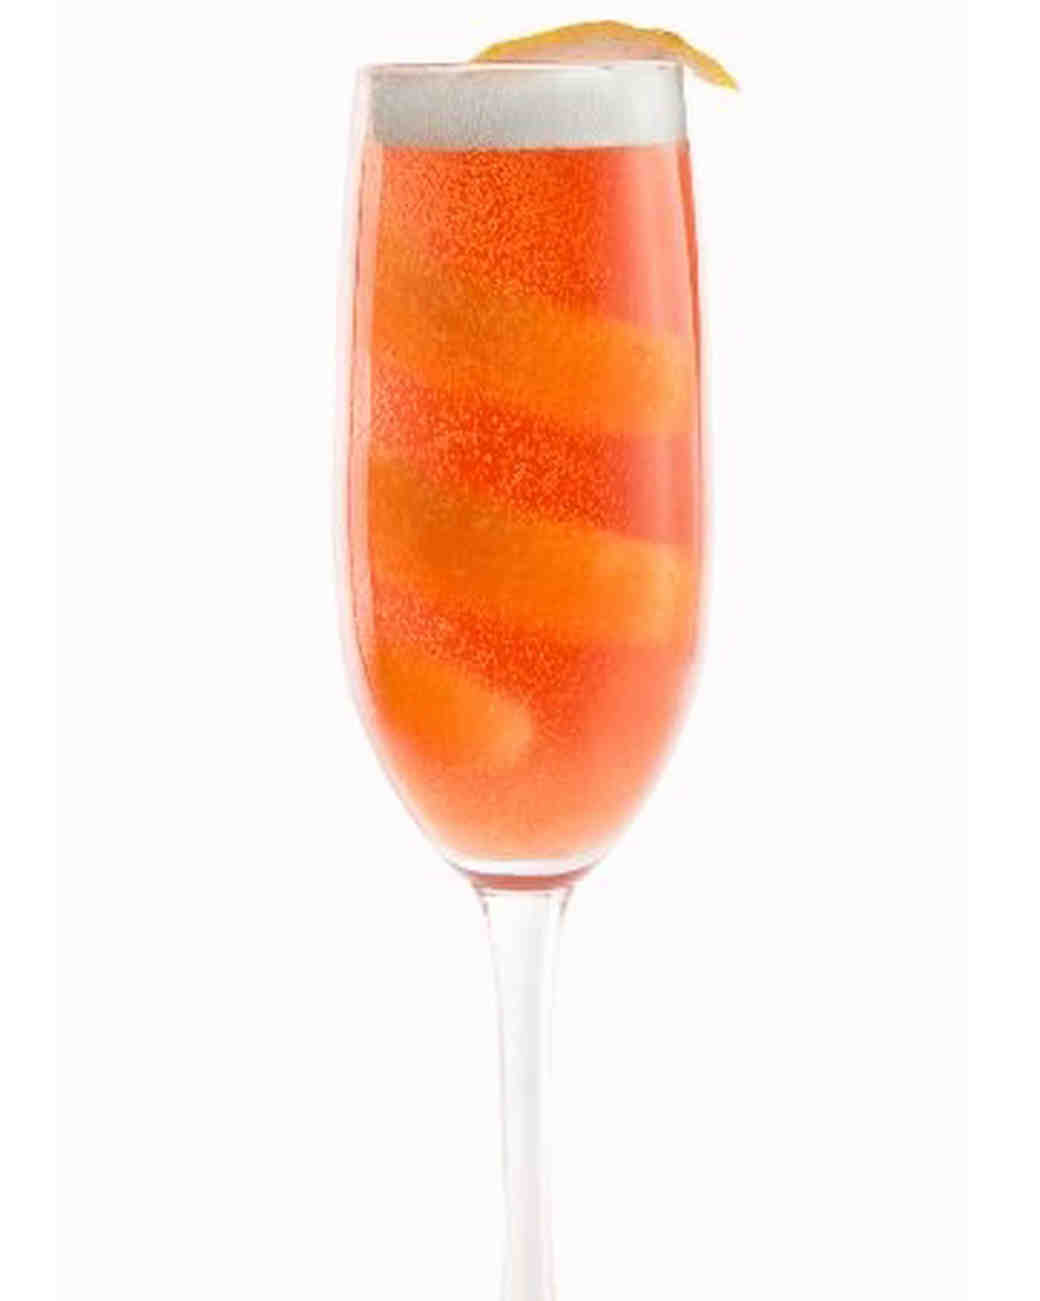 Sparkling rosé cocktail